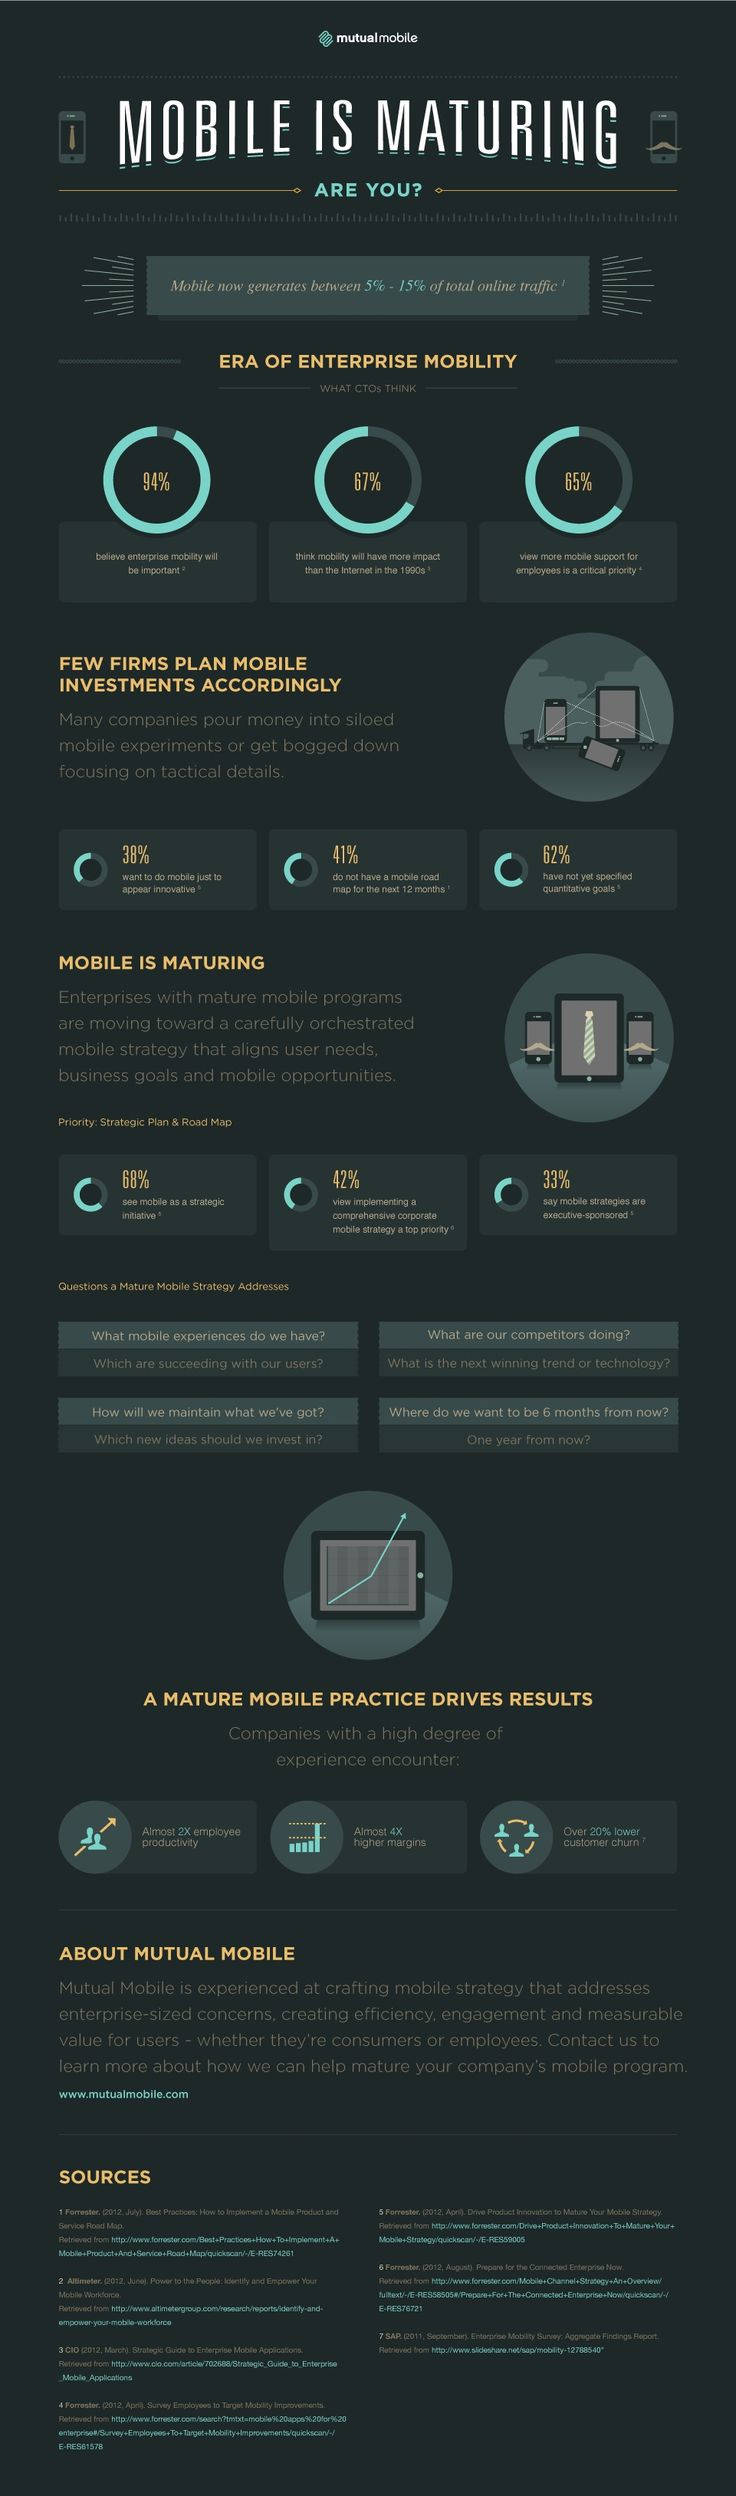 Mobile - Mobile Is Maturing